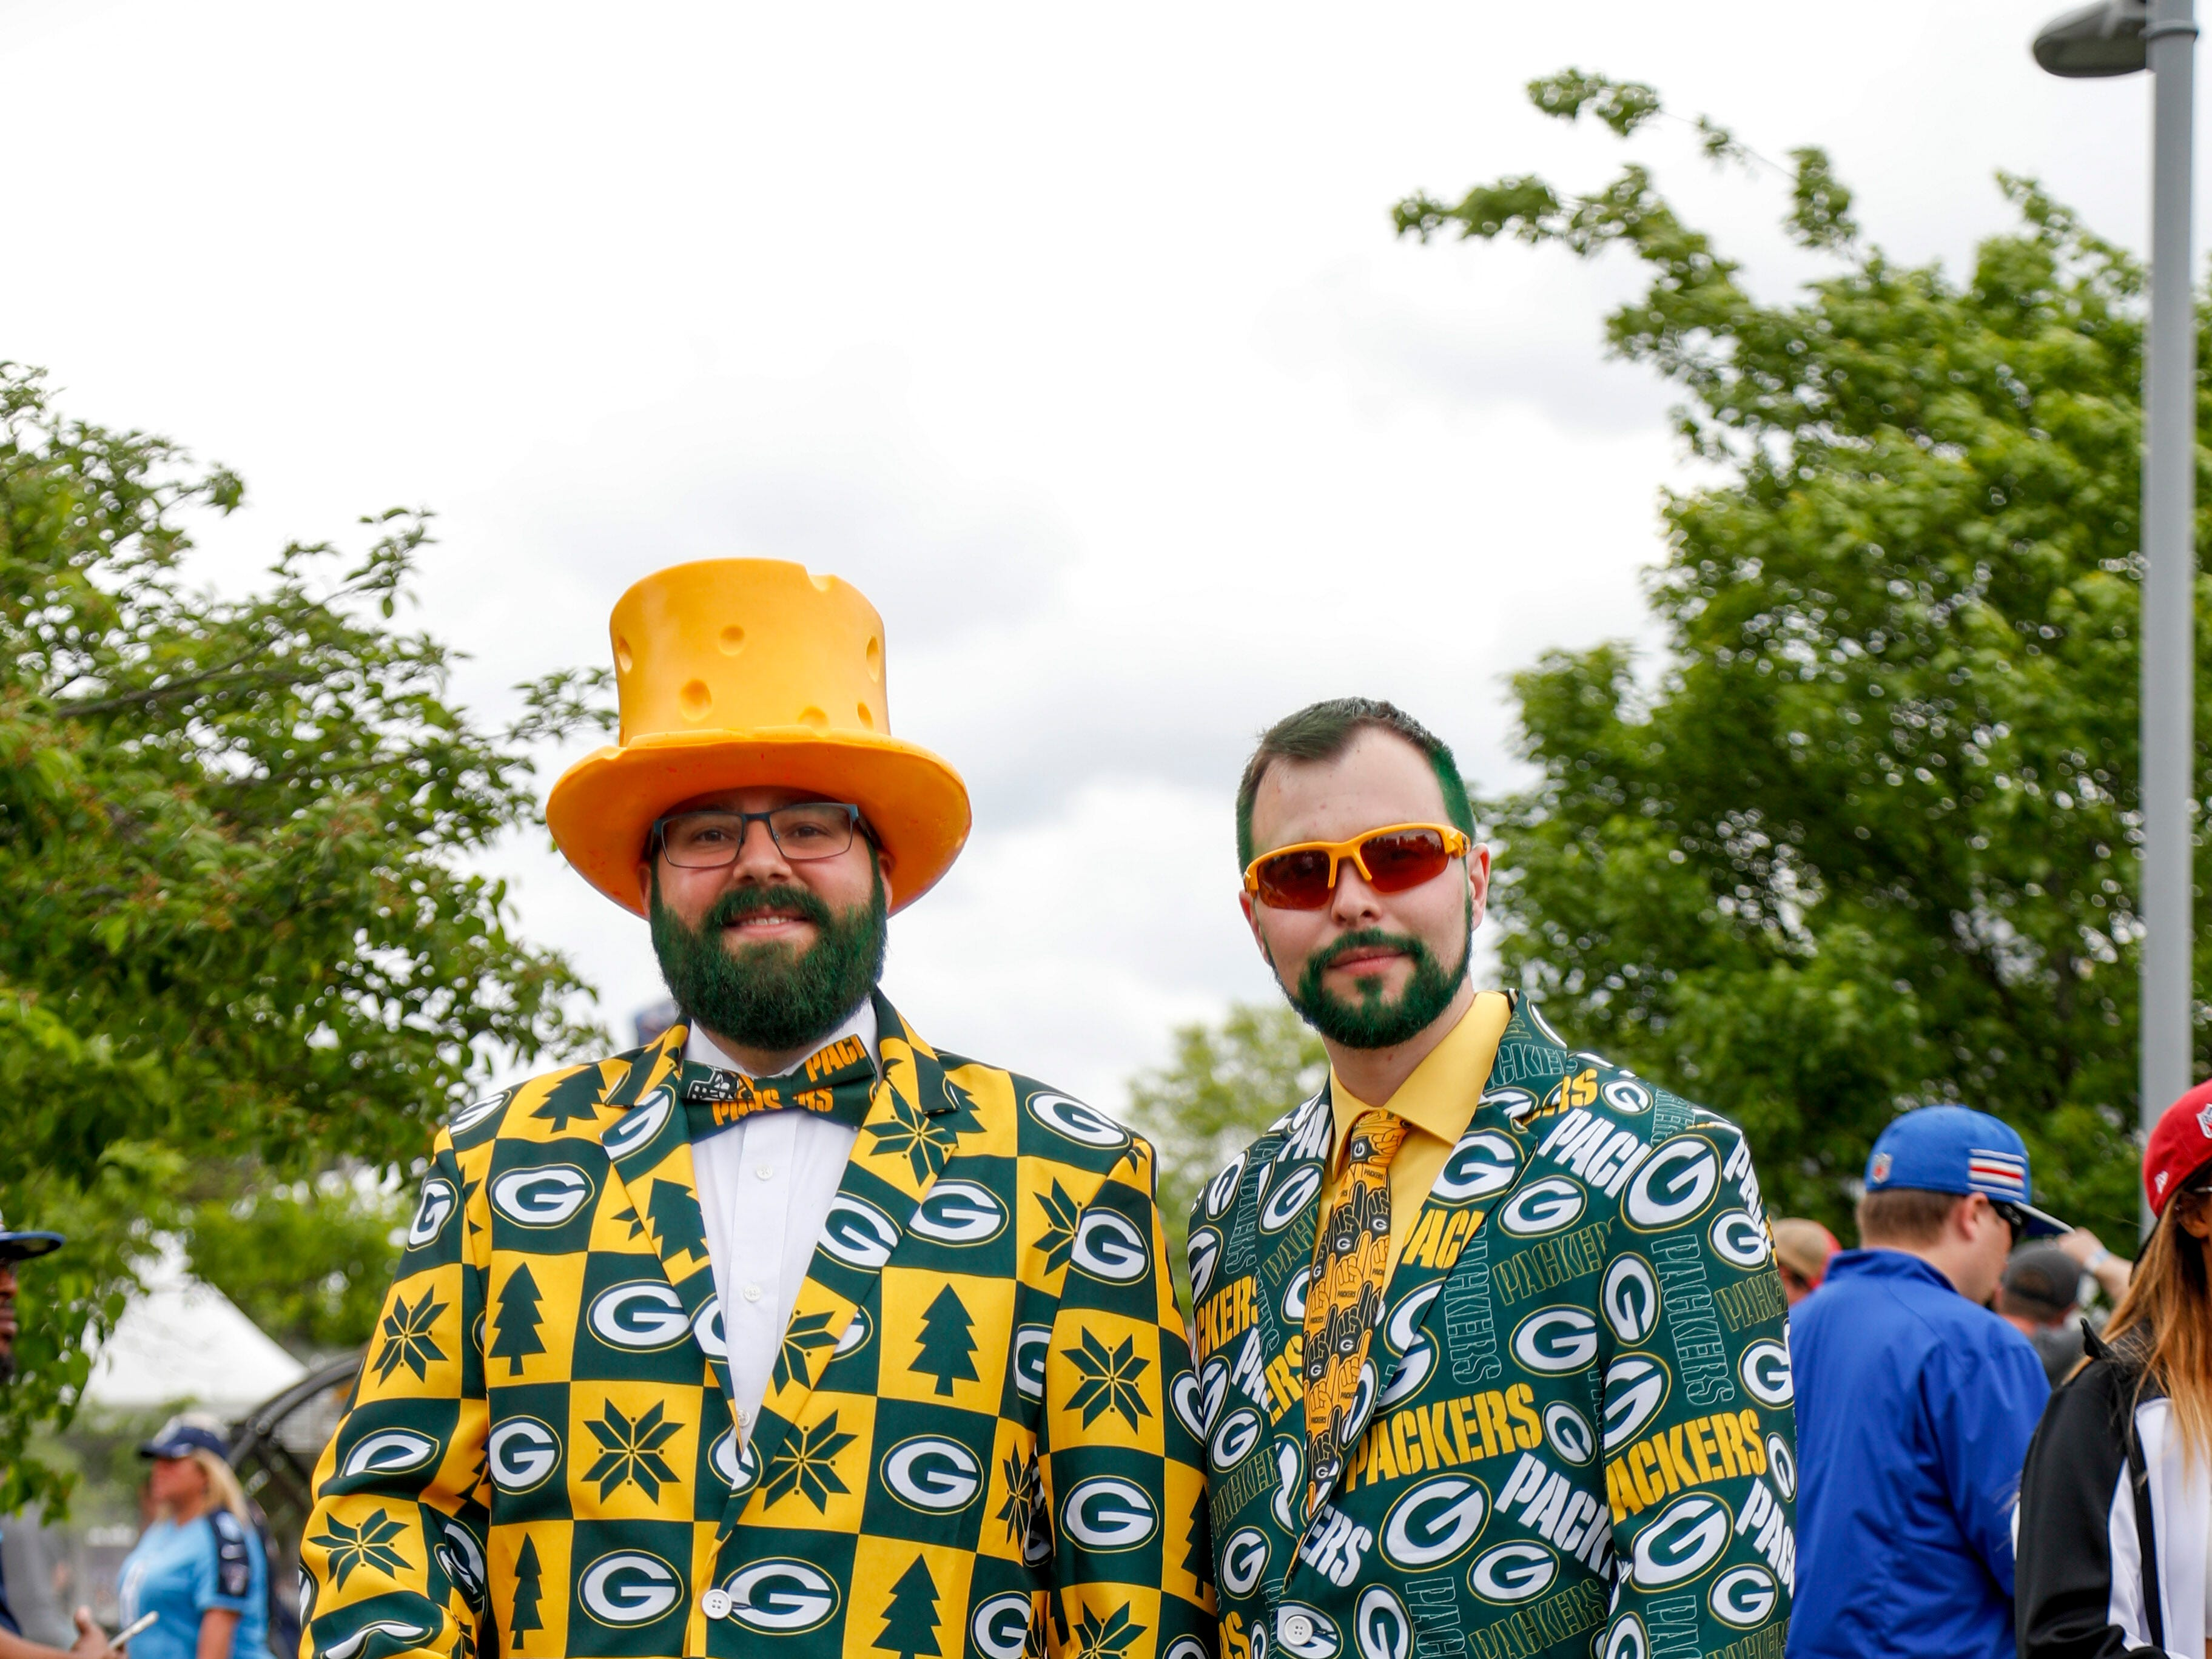 Packers fans pose in full dapper attire during the NFL Draft Experience at Nissan Stadium in Nashville, Tenn., on Thursday, April 25, 2019.